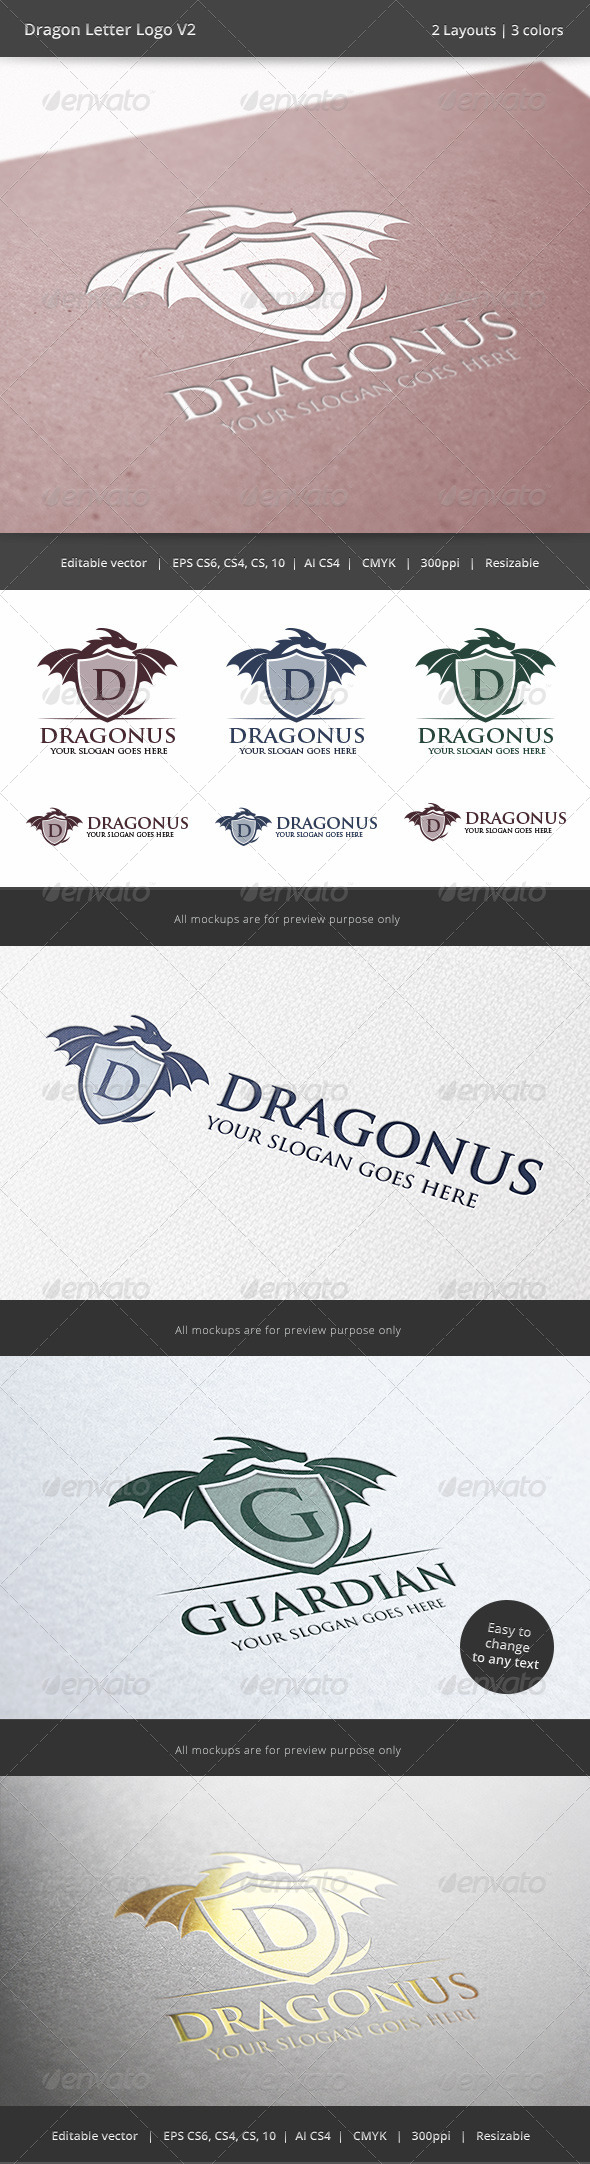 GraphicRiver Dragon Letter V2 Logo 6478228